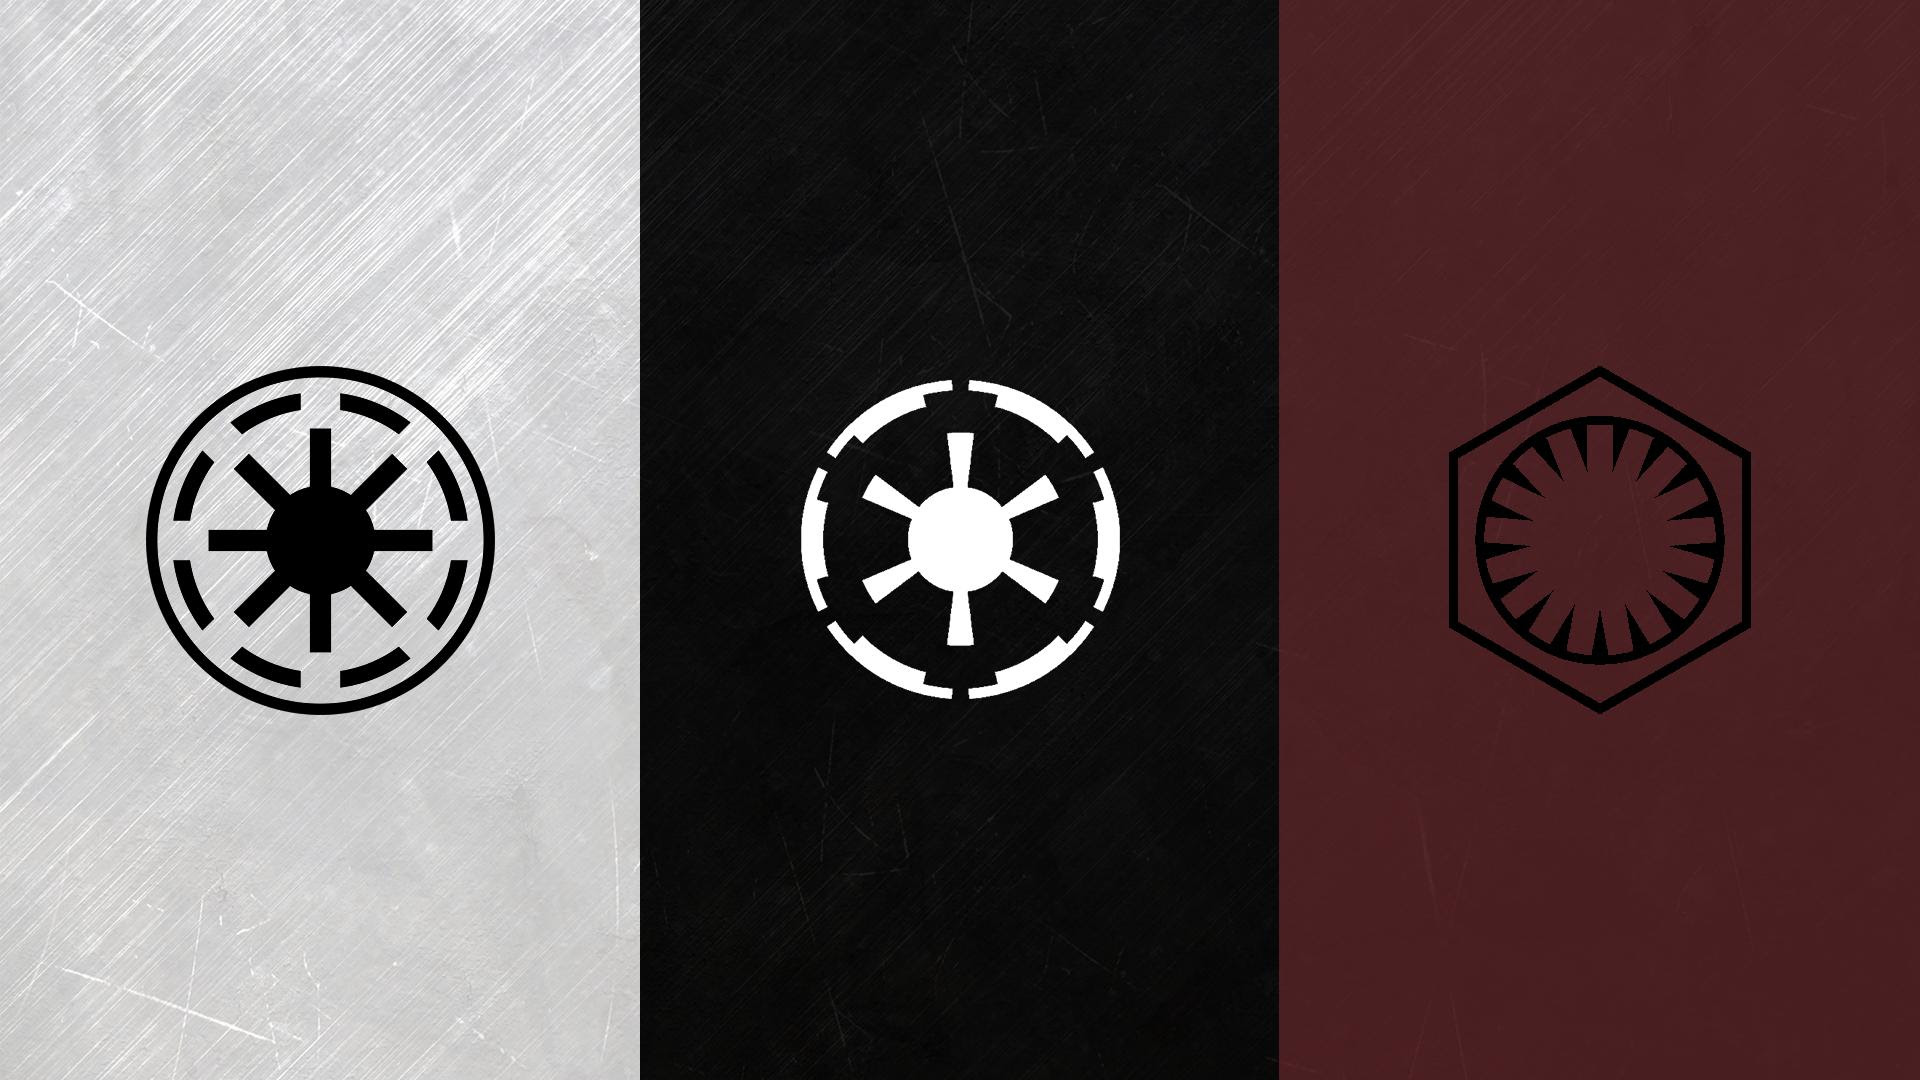 Evolution Of The Empire Wallpaper 1920x1080 Starwars